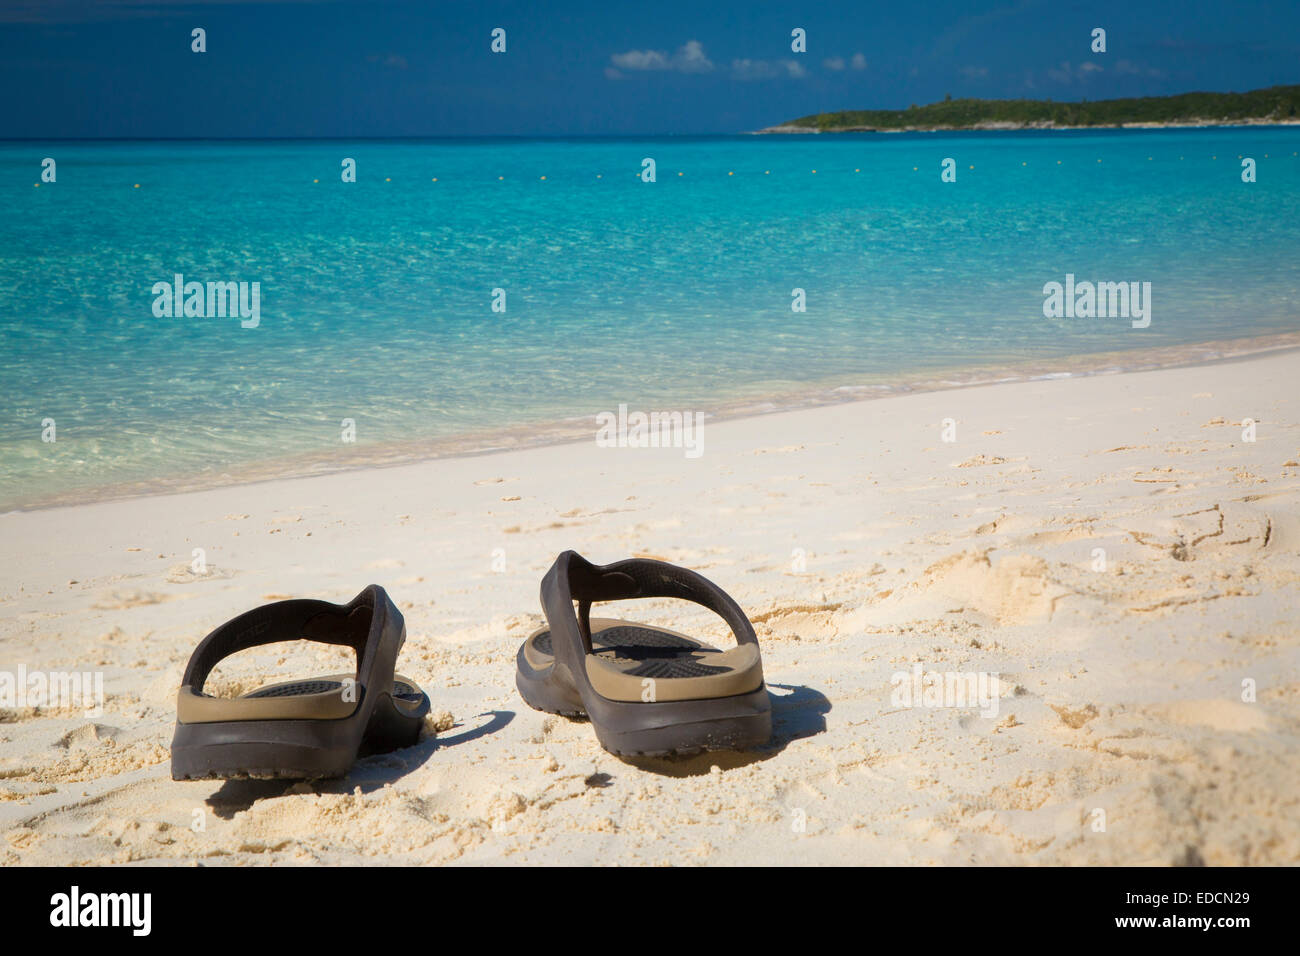 Flip flops on a sandy beach with turquoise water beyond, Halfmoon Cay, Bahamas - Stock Image